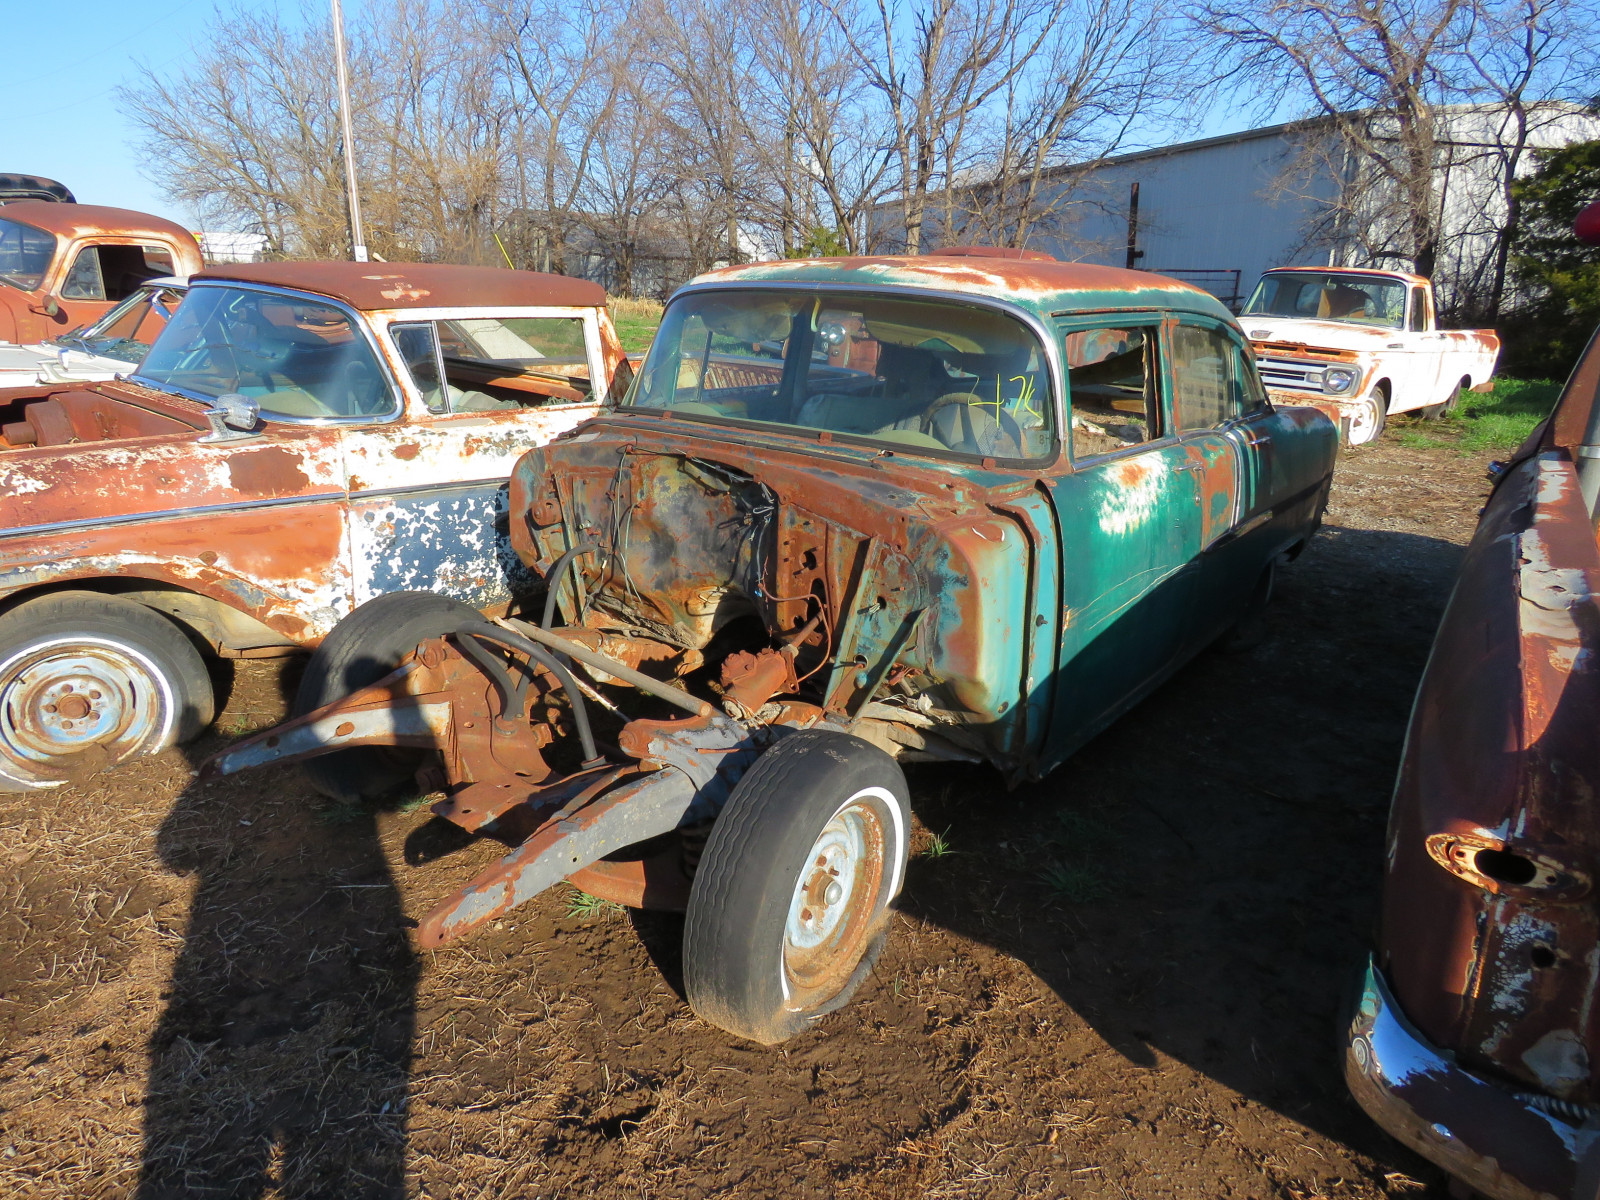 1955 Chevrolet 4dr Sedan for parts - Image 1